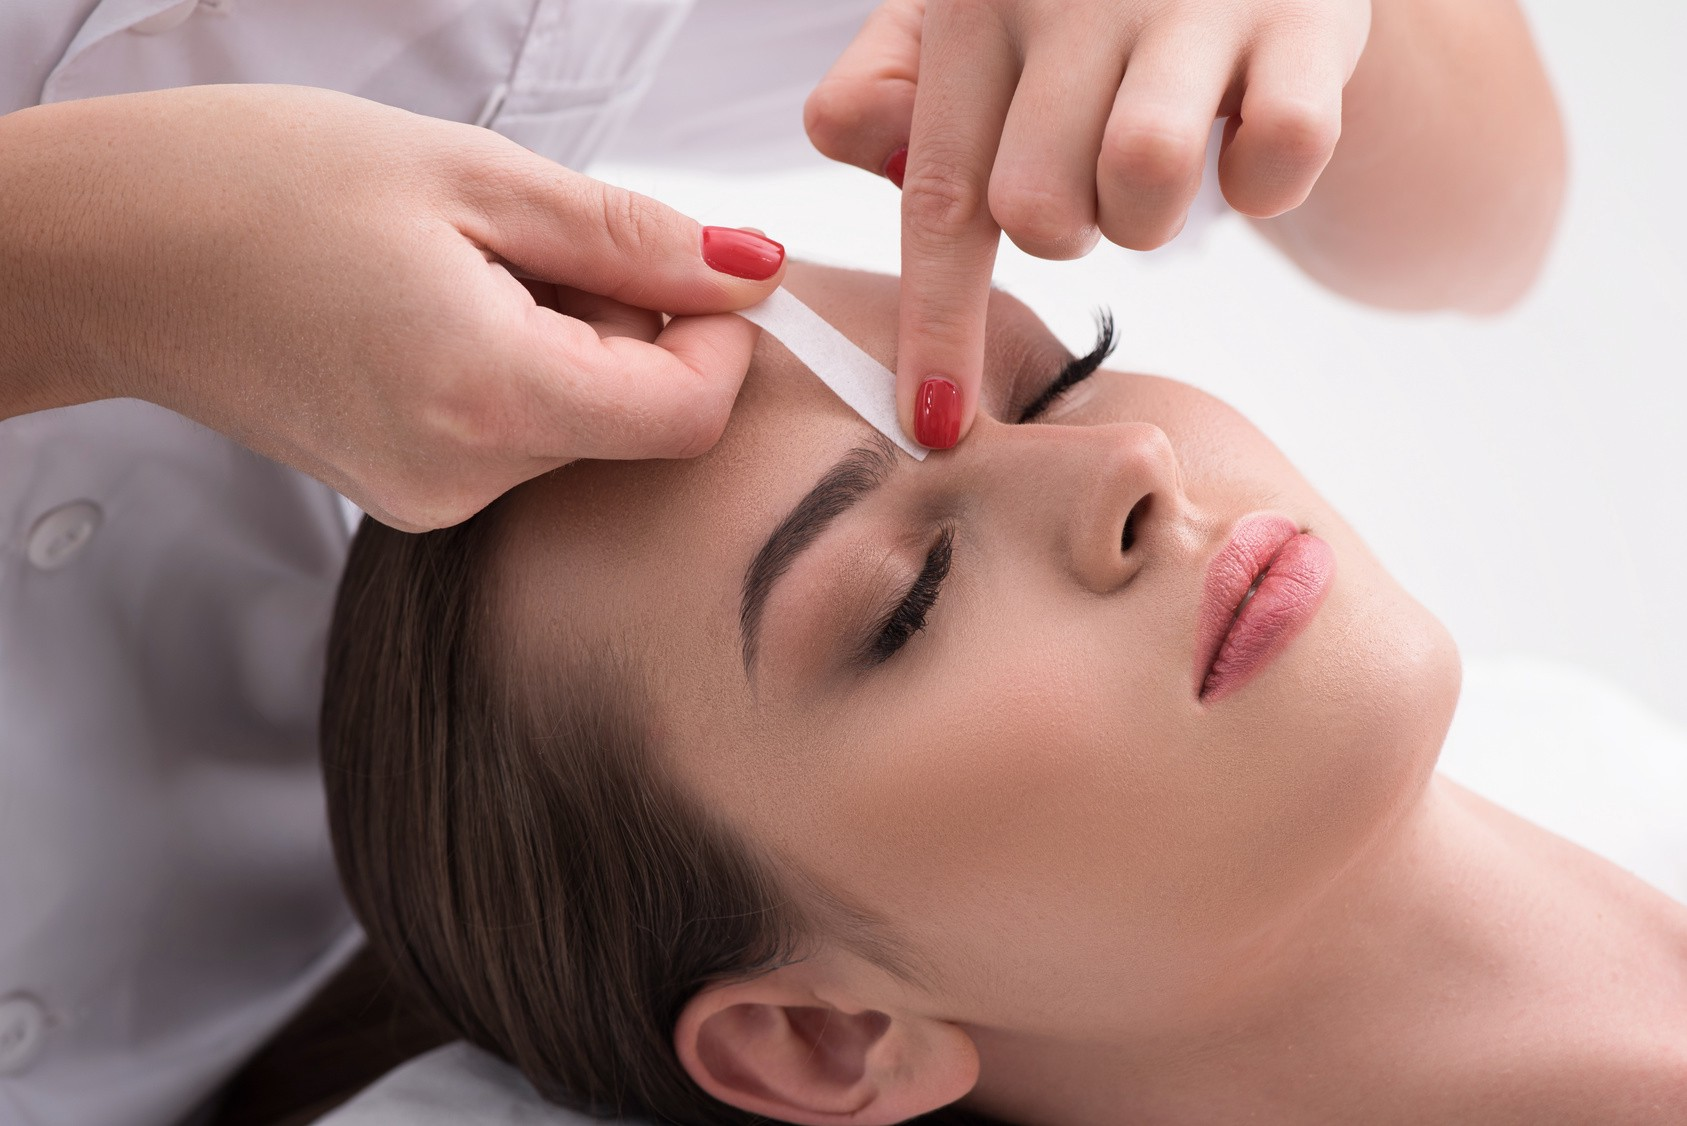 Full Body Waxing, Eyebrow Waxing & Face Wax Services in Atlanta